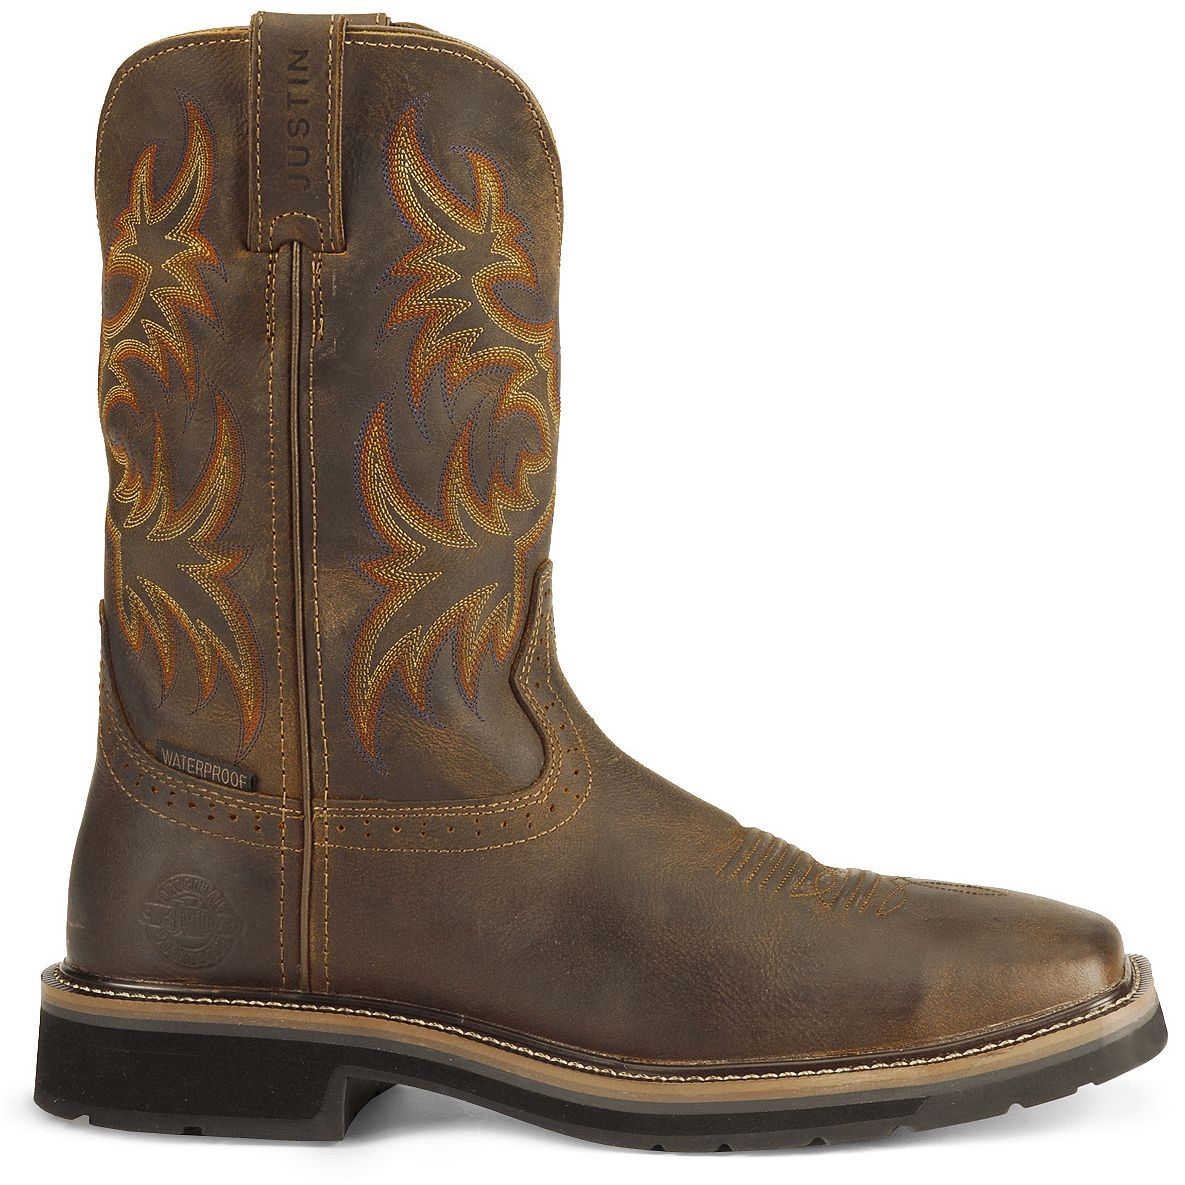 Justin Stampede Tan Waterproof Work Boots Soft Square